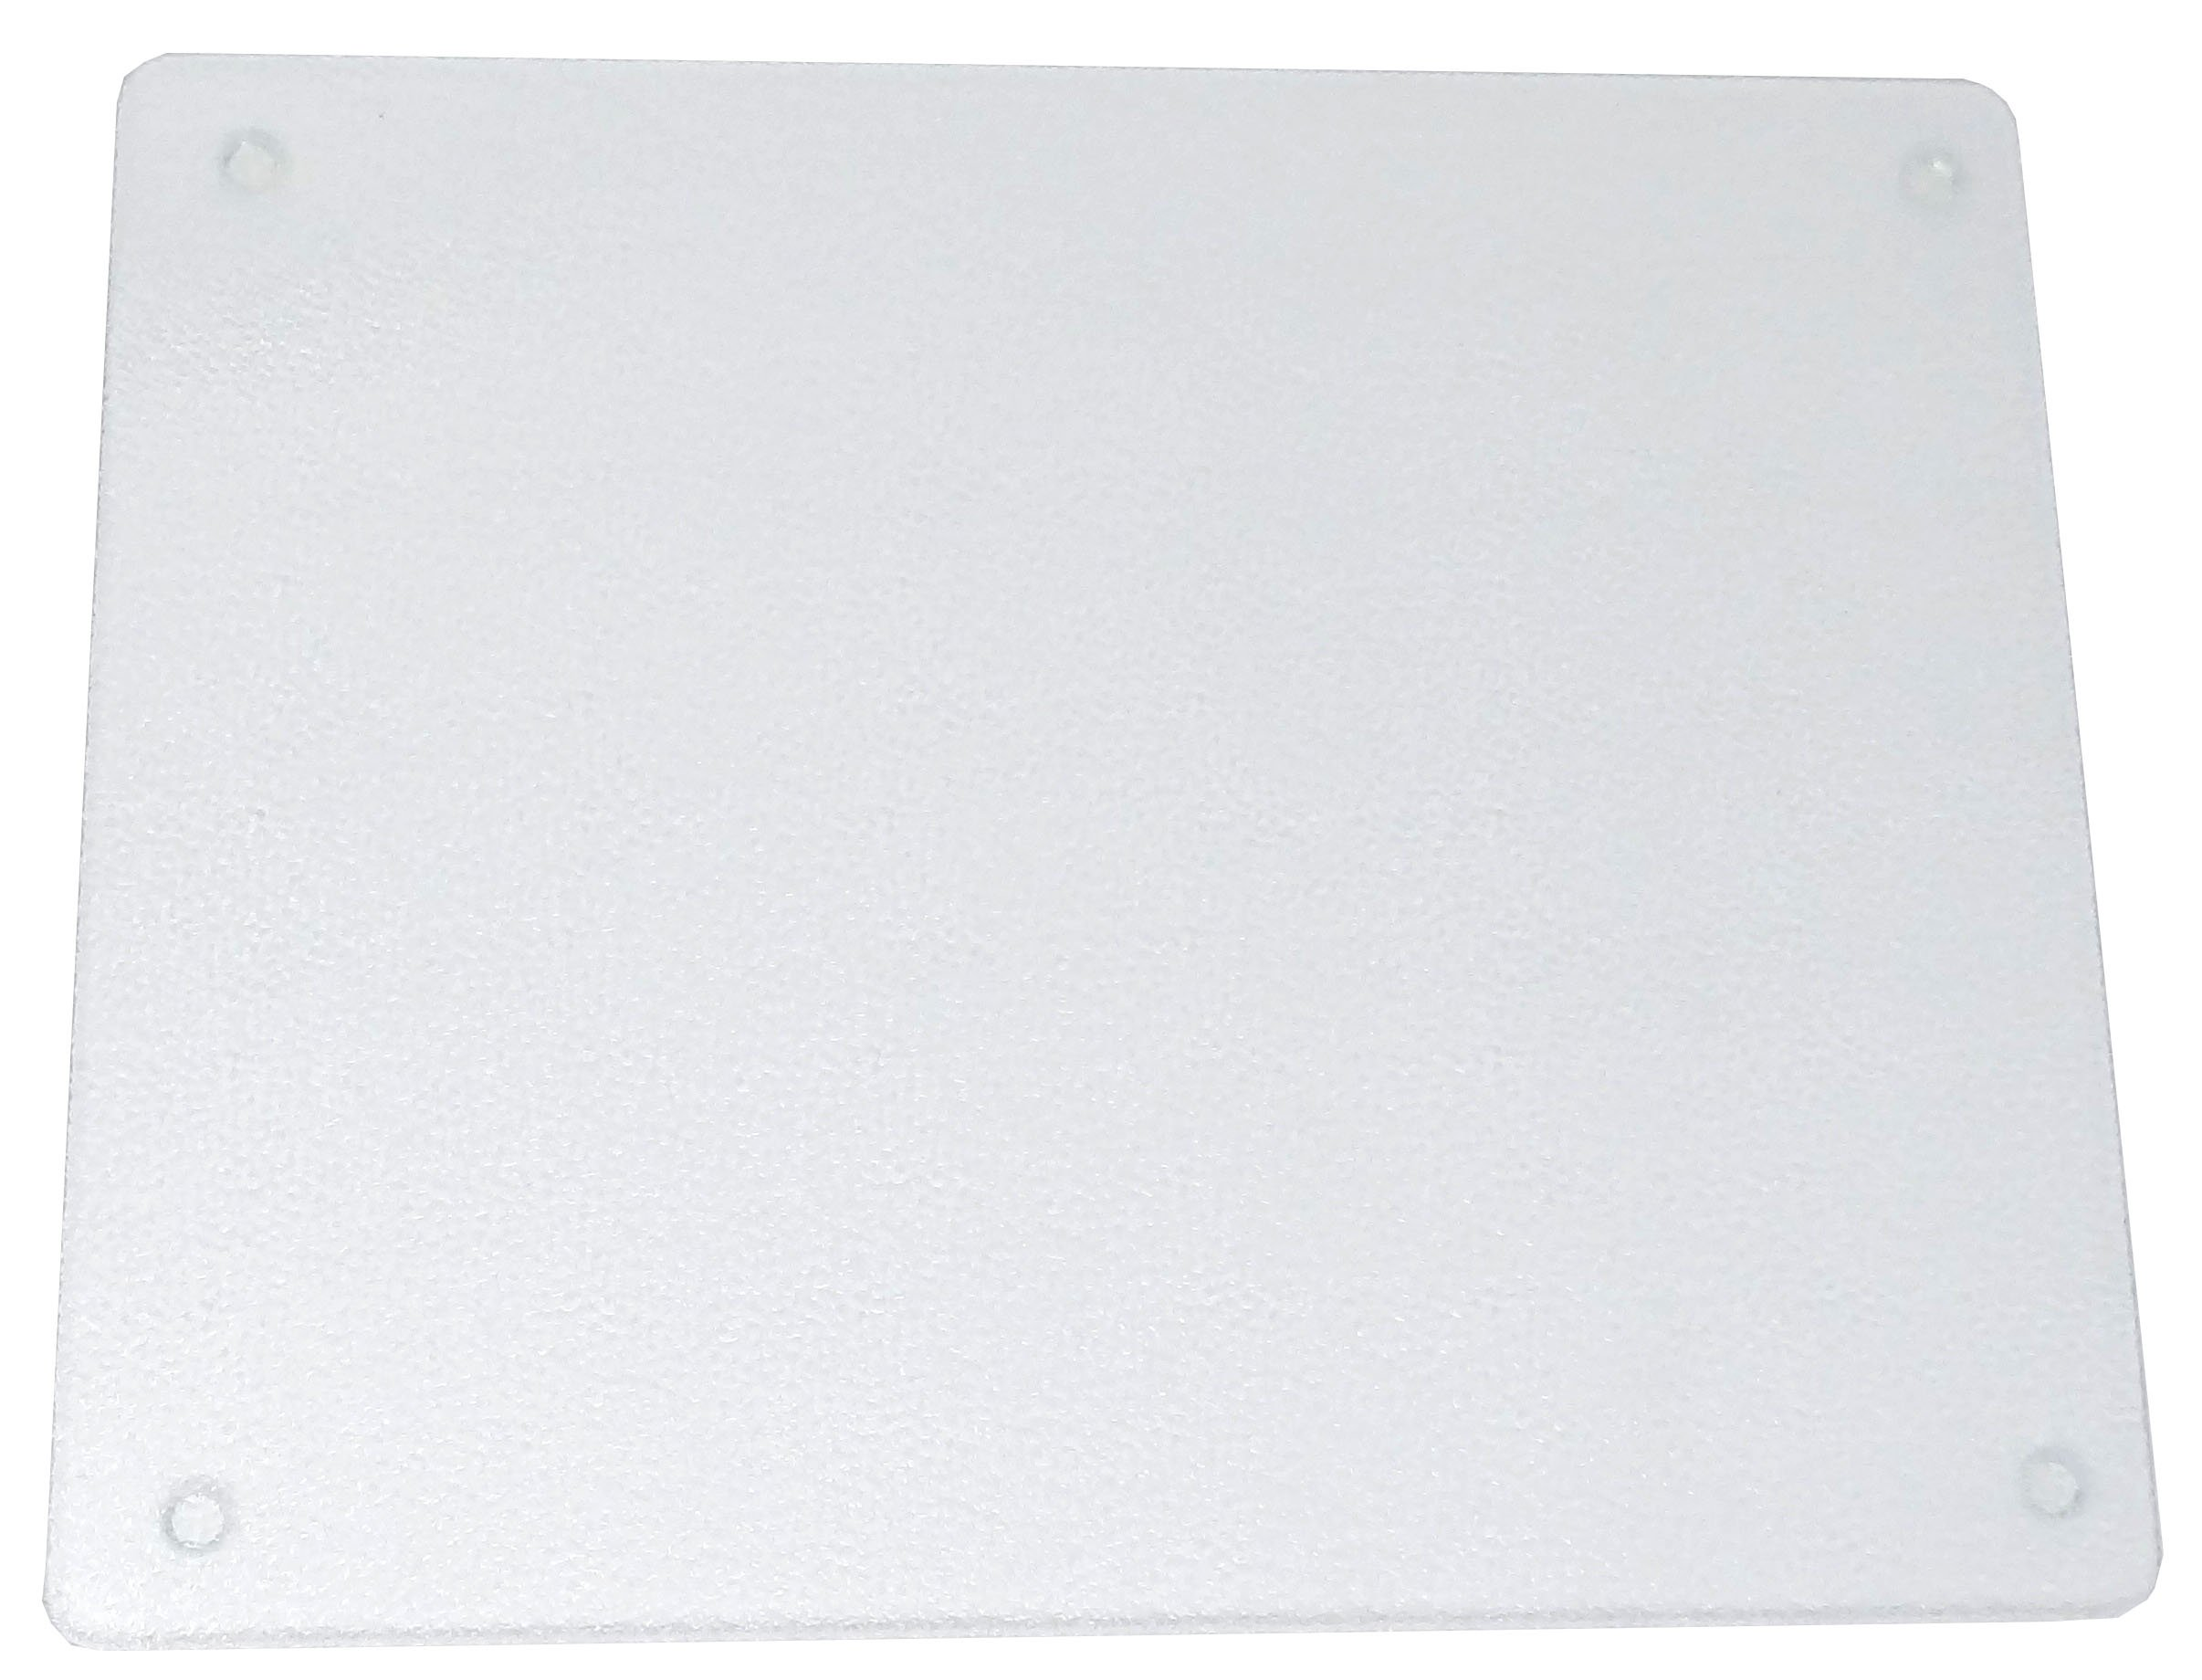 Vance 20 x 16'' Clear Surface Saver Tempered Glass Cutting Board, 82016C